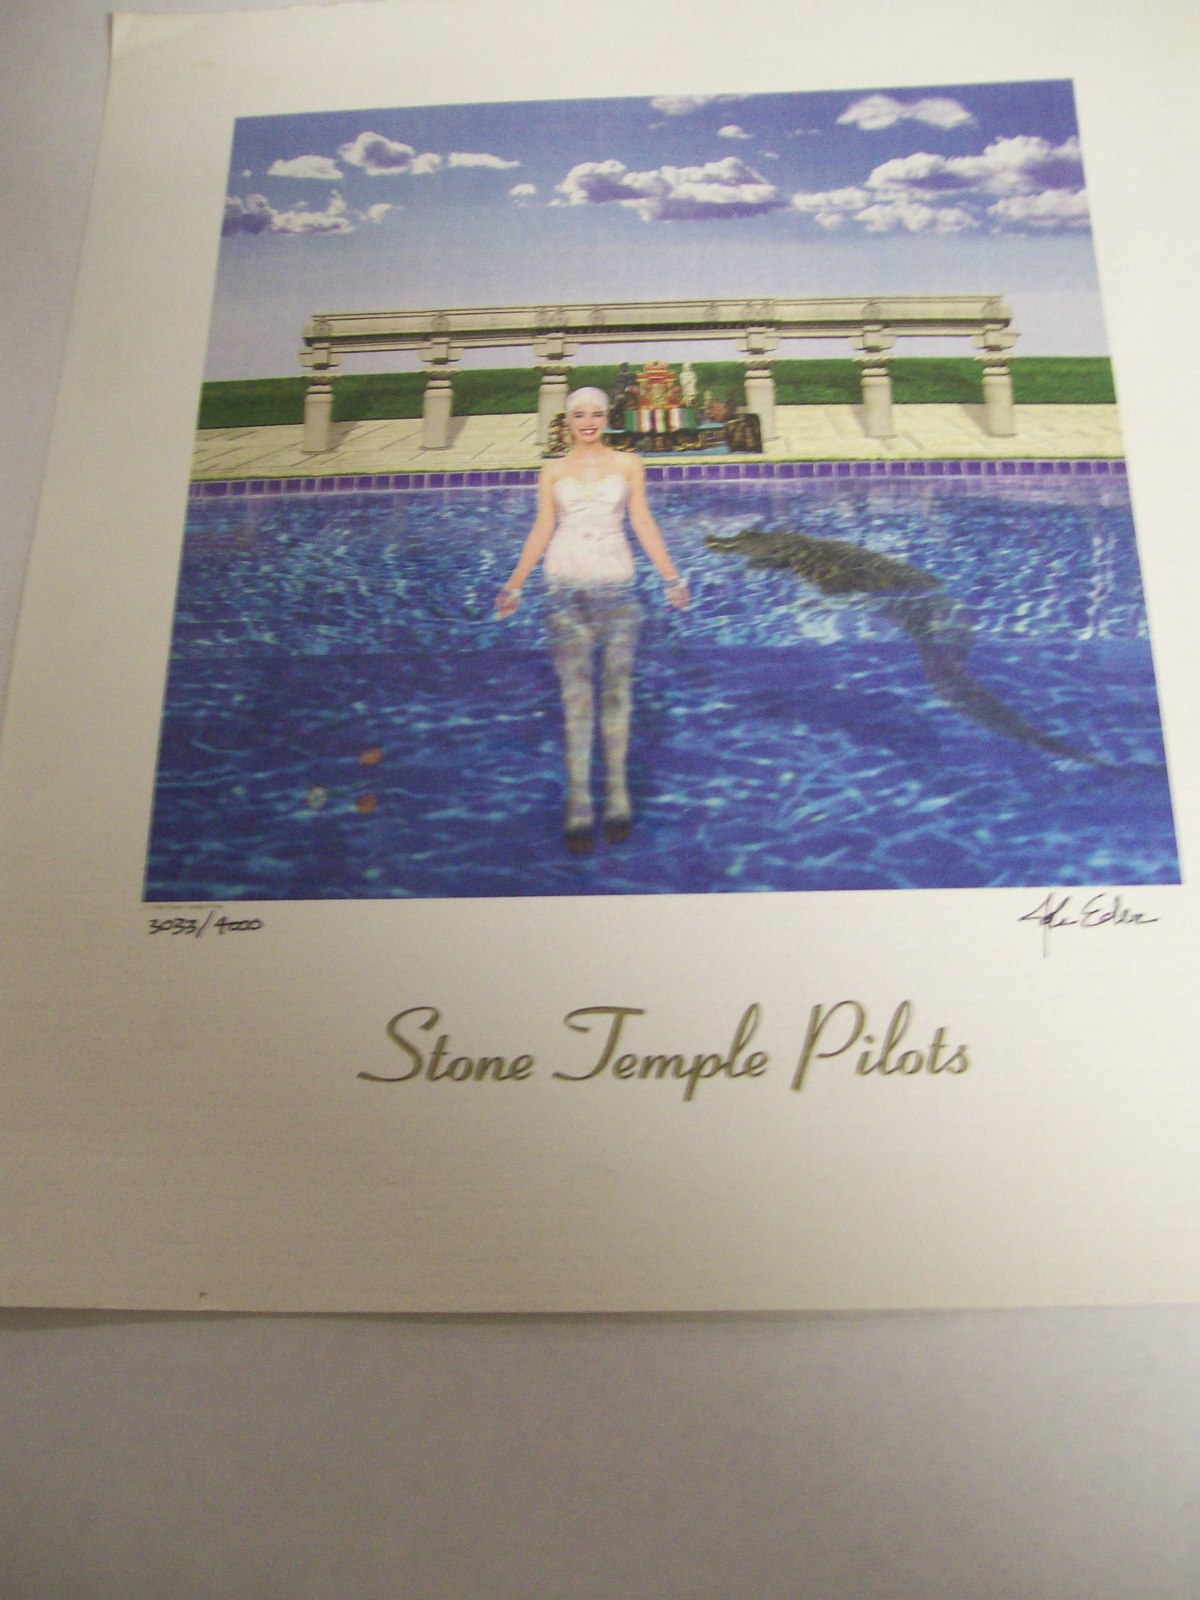 Stone Temple Pilots Signed L.P. Album Cover Artwork